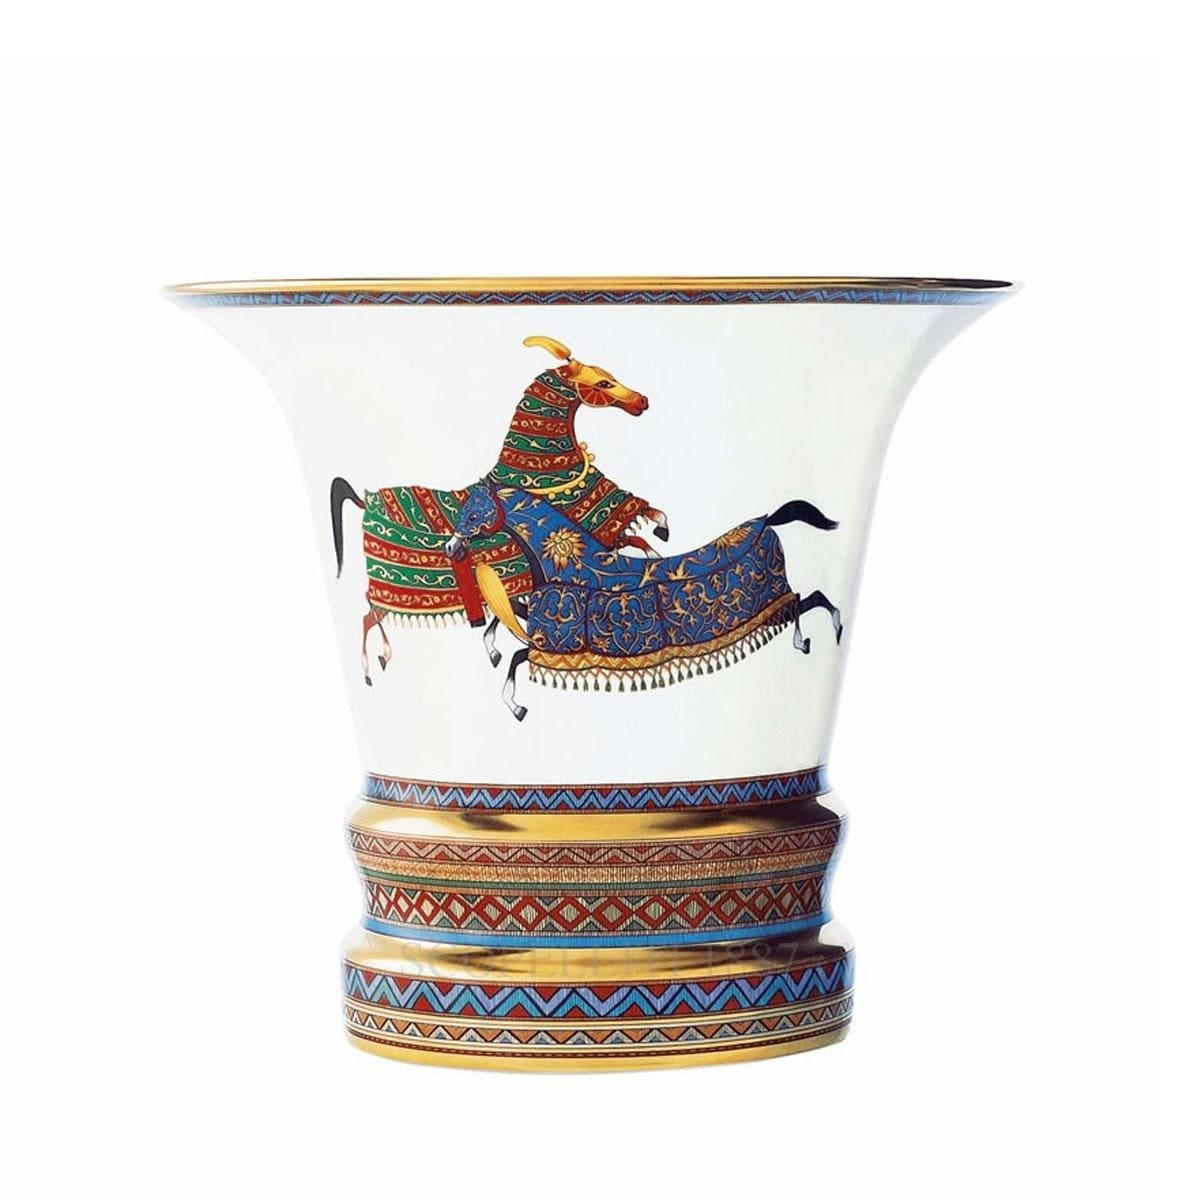 Hermes Cheval d'Orient Vase large model